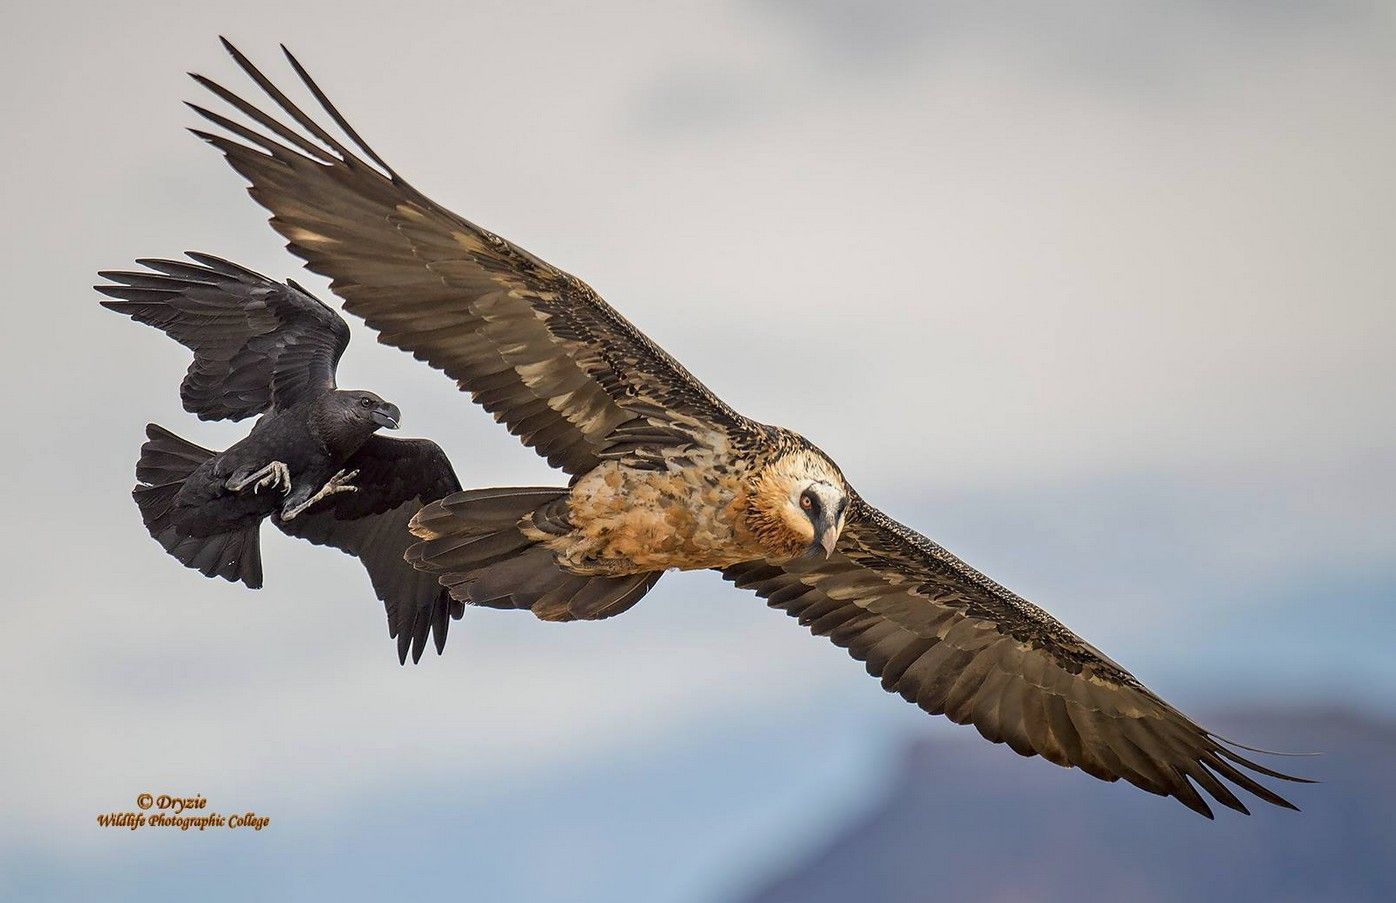 Watching the inter-action between the White Necked Ravens and the Bearded Vultures, is always something to watch for when visiting Giants Castle....In this series you can see how the Raven lands on the Beardies back and tries to pull his feathers out